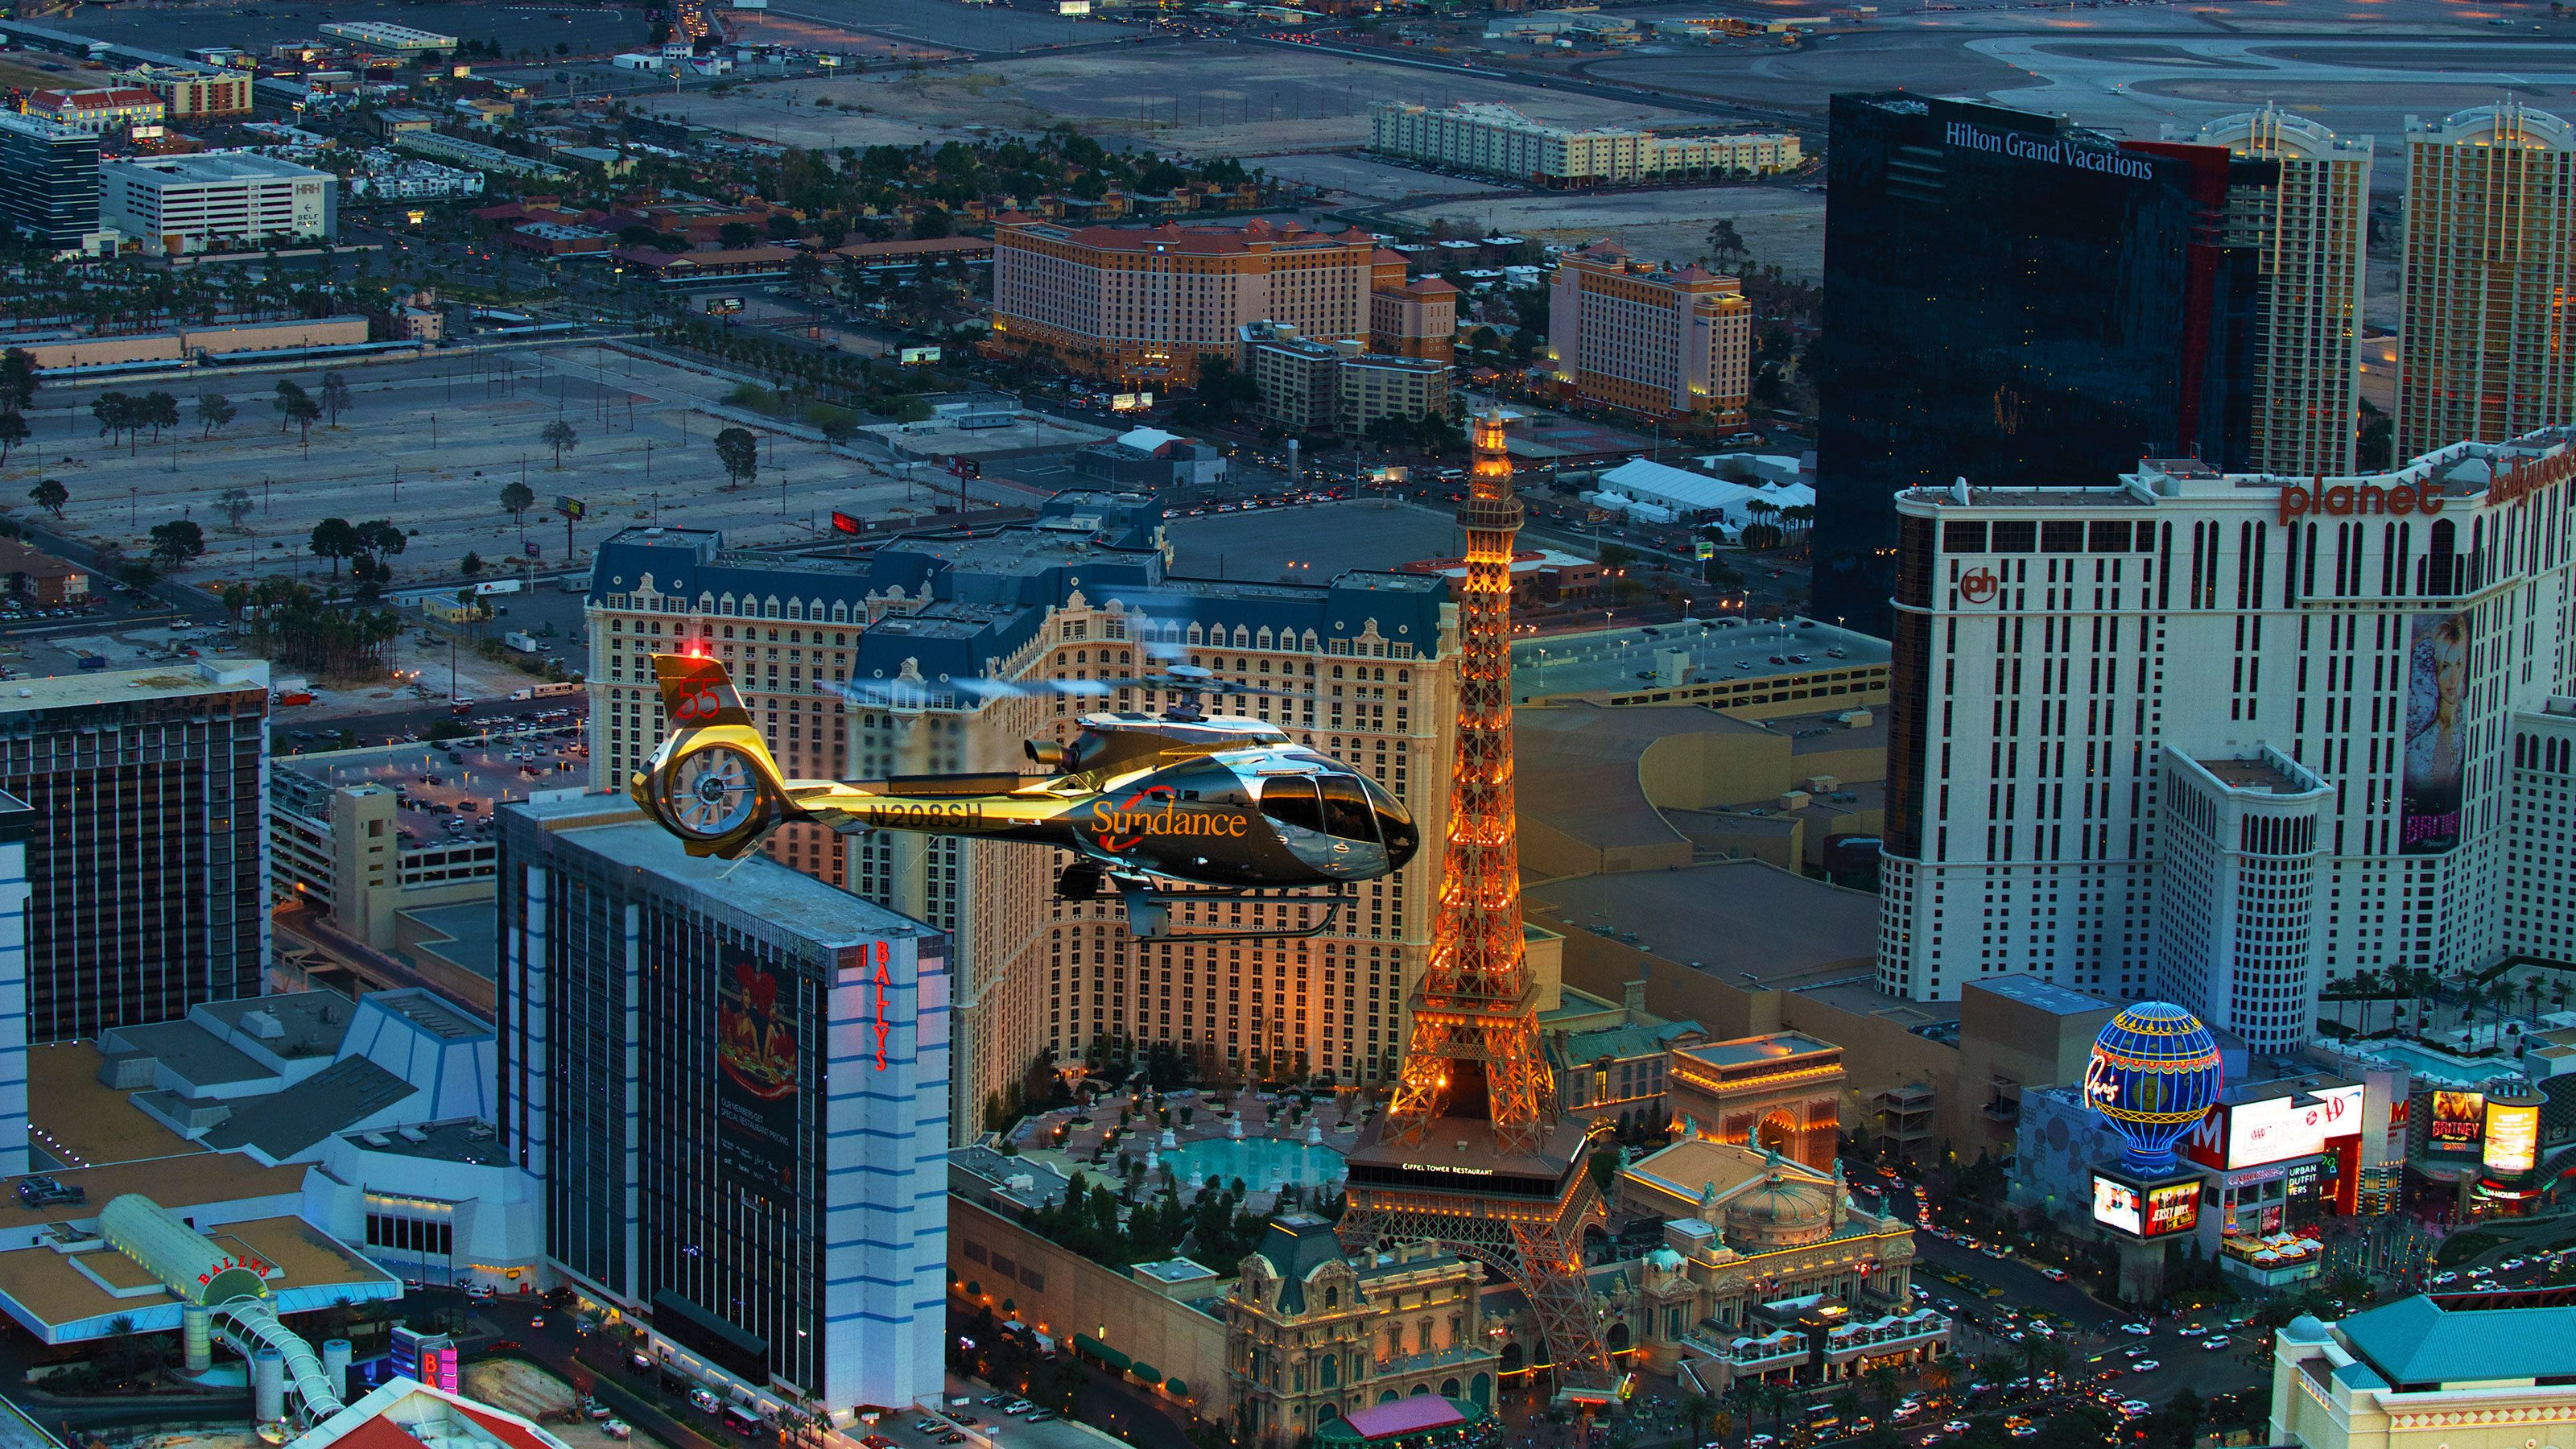 Helicopter flying above The Strip at night in Las Vegas